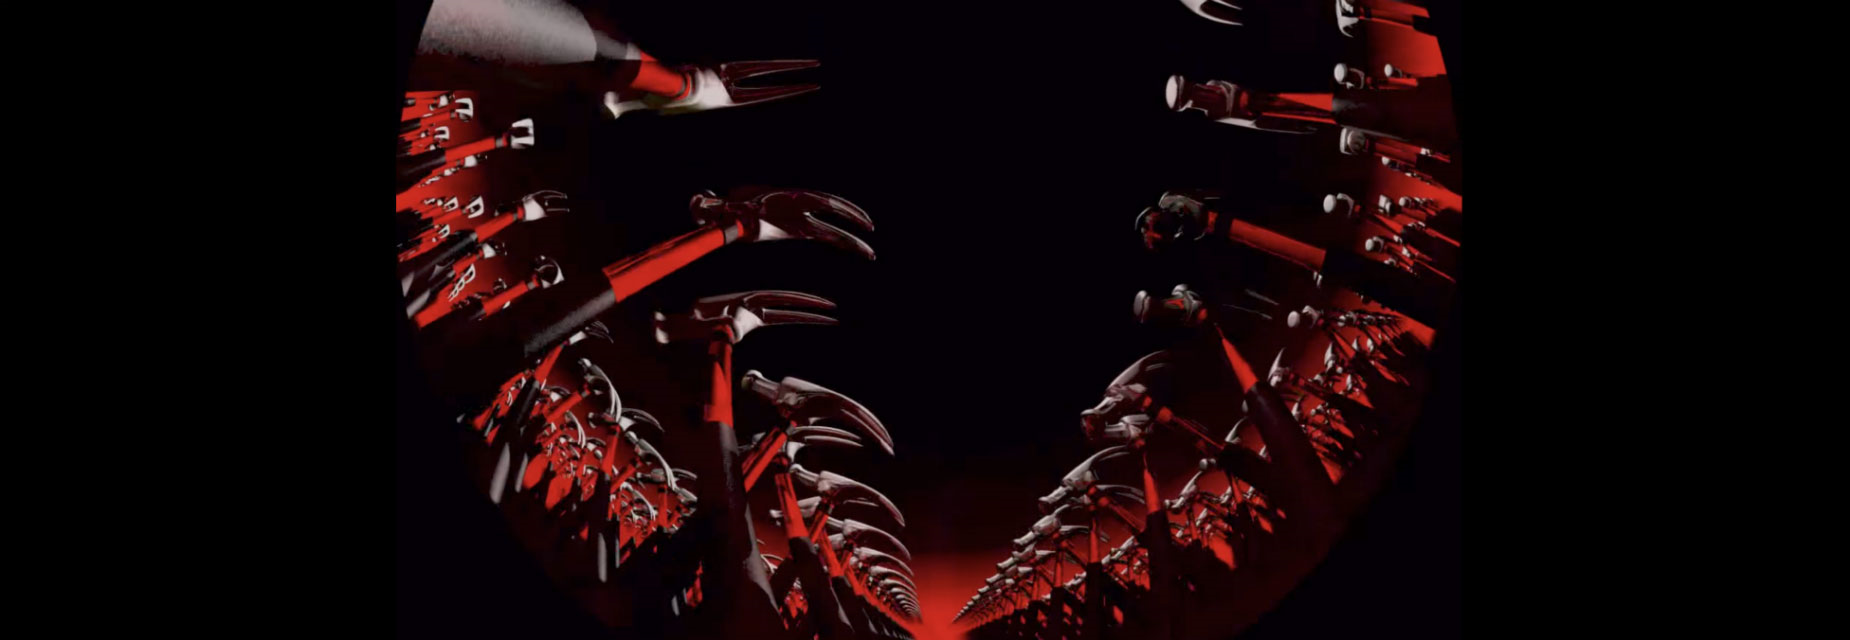 Visuals of red hammers taken from the film